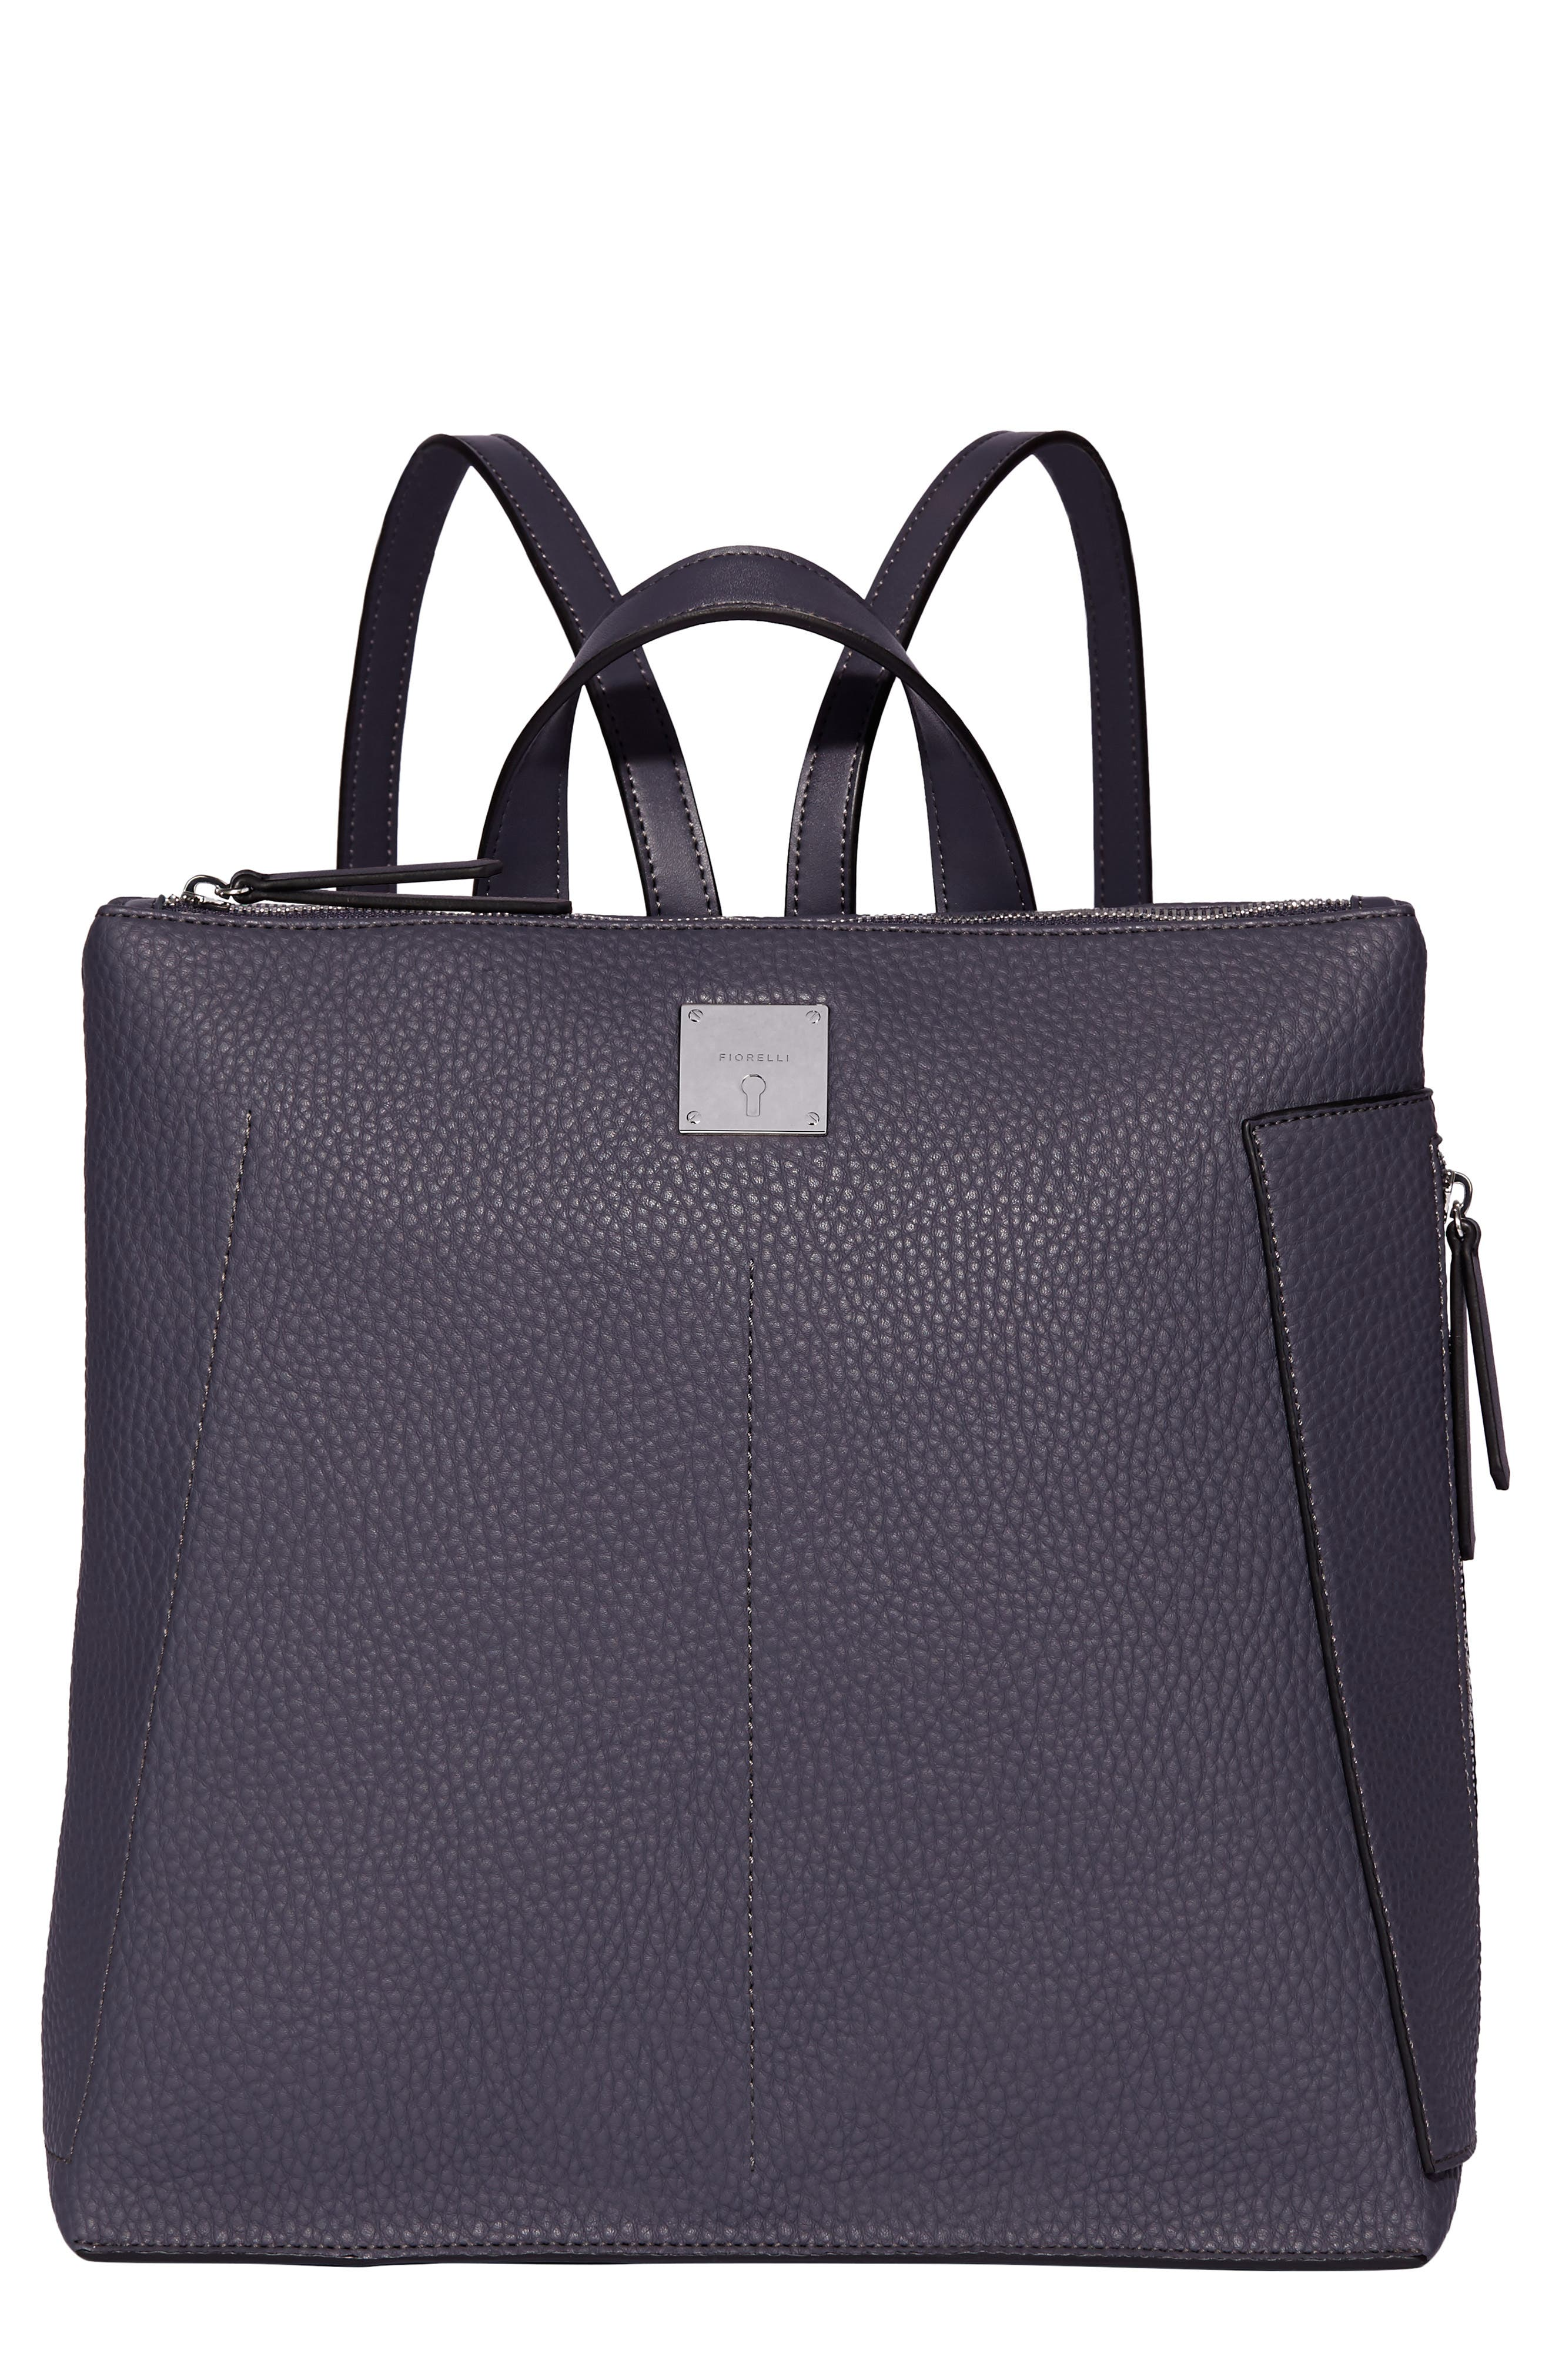 Finley Faux Leather Backpack,                         Main,                         color, FENCHURCH BLUE